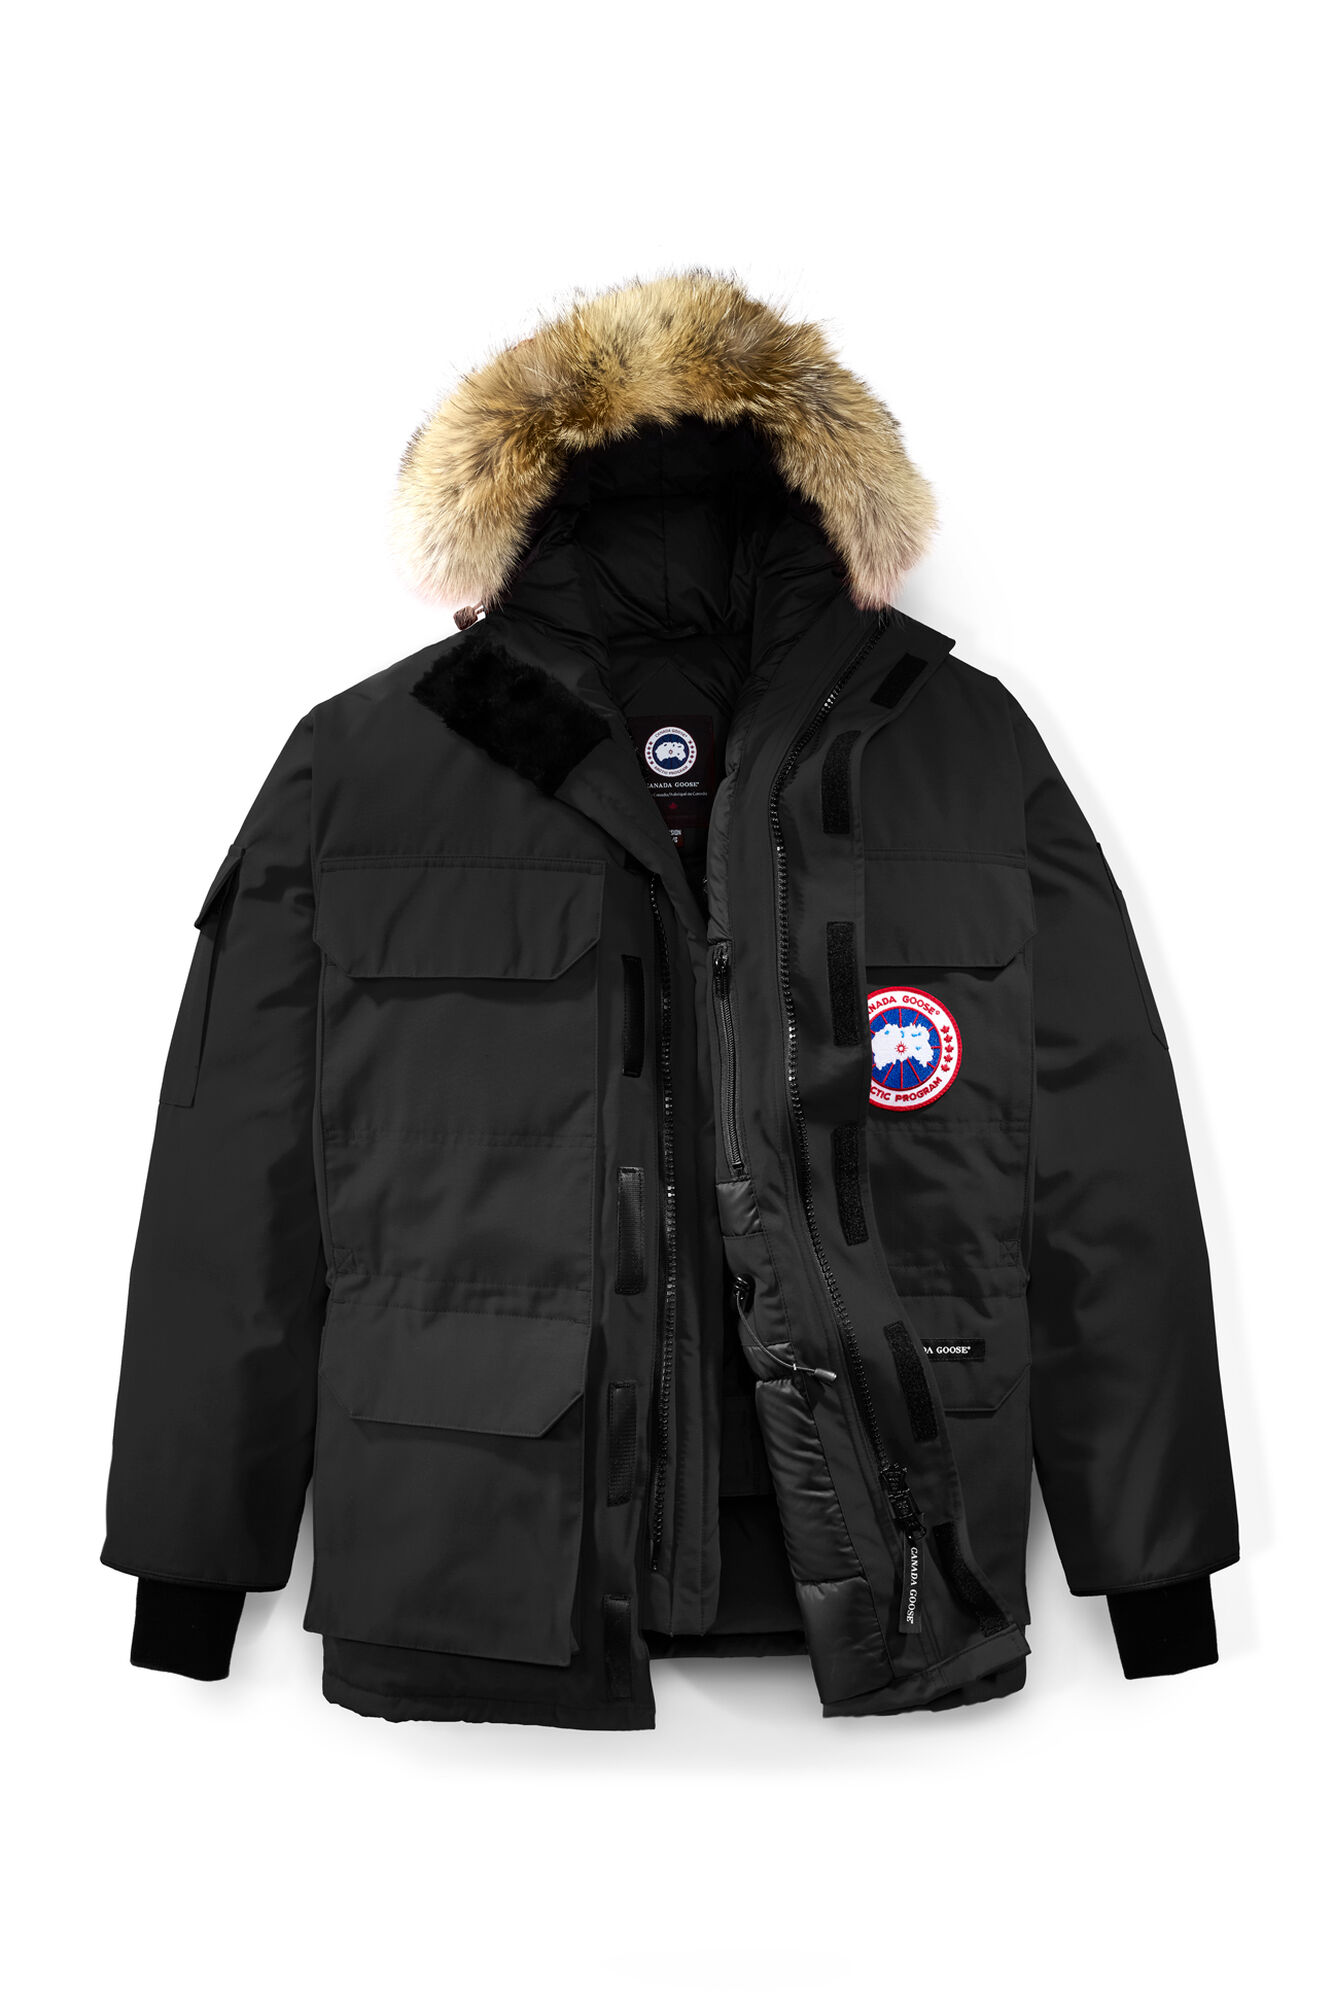 Canada Goose trillium parka replica official - Mens Extreme Weather Outerwear | Canada Goose?